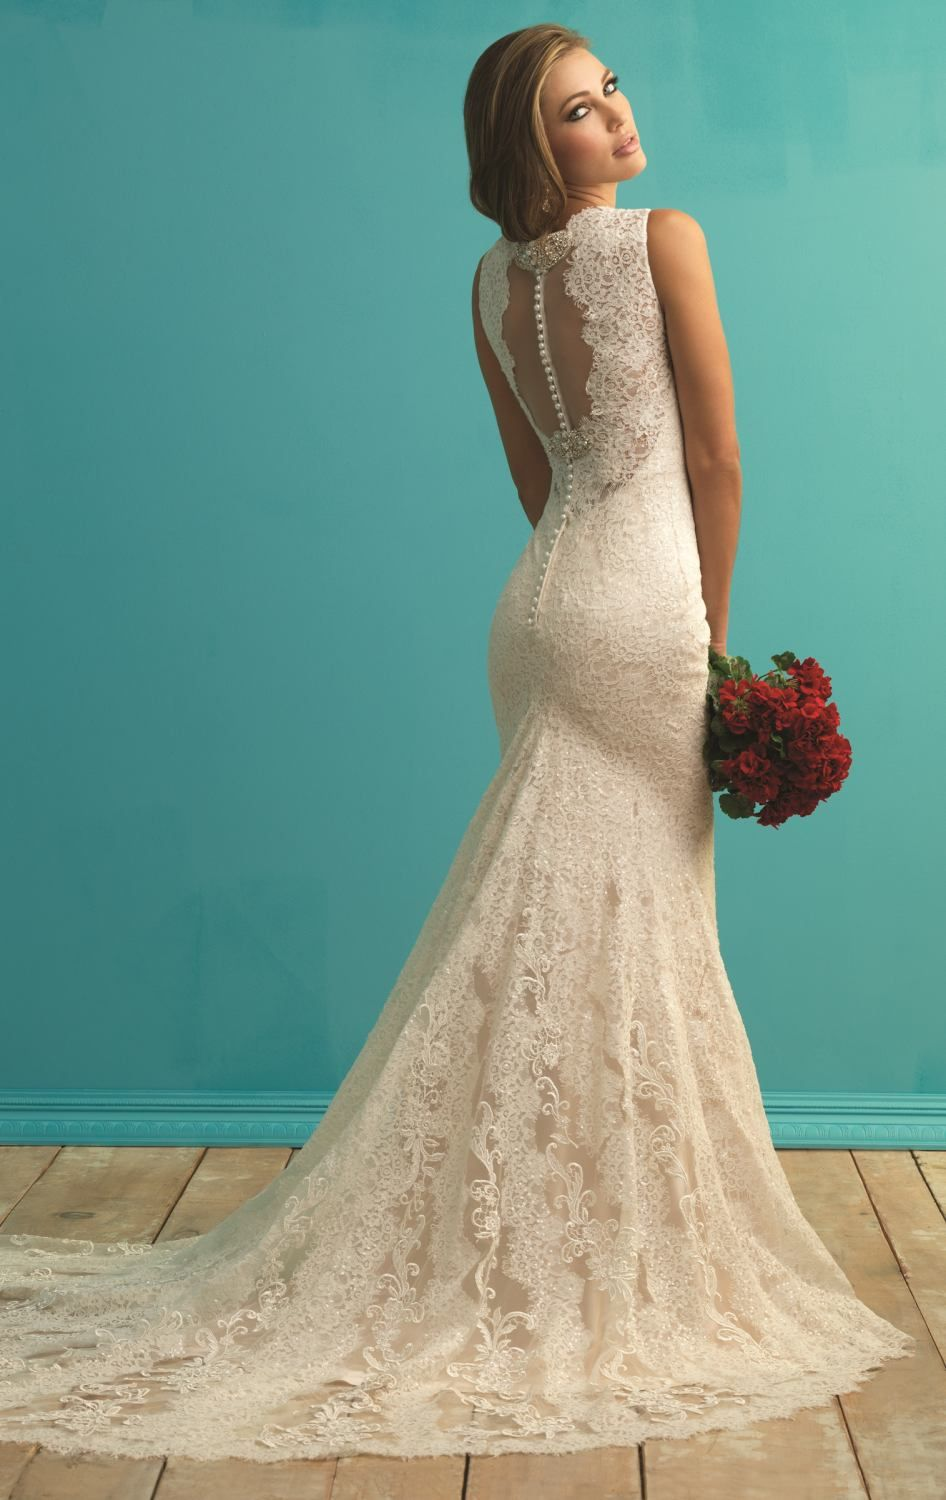 Allure 9253 Dress - MissesDressy.com | Vestidos | Pinterest | Allure ...